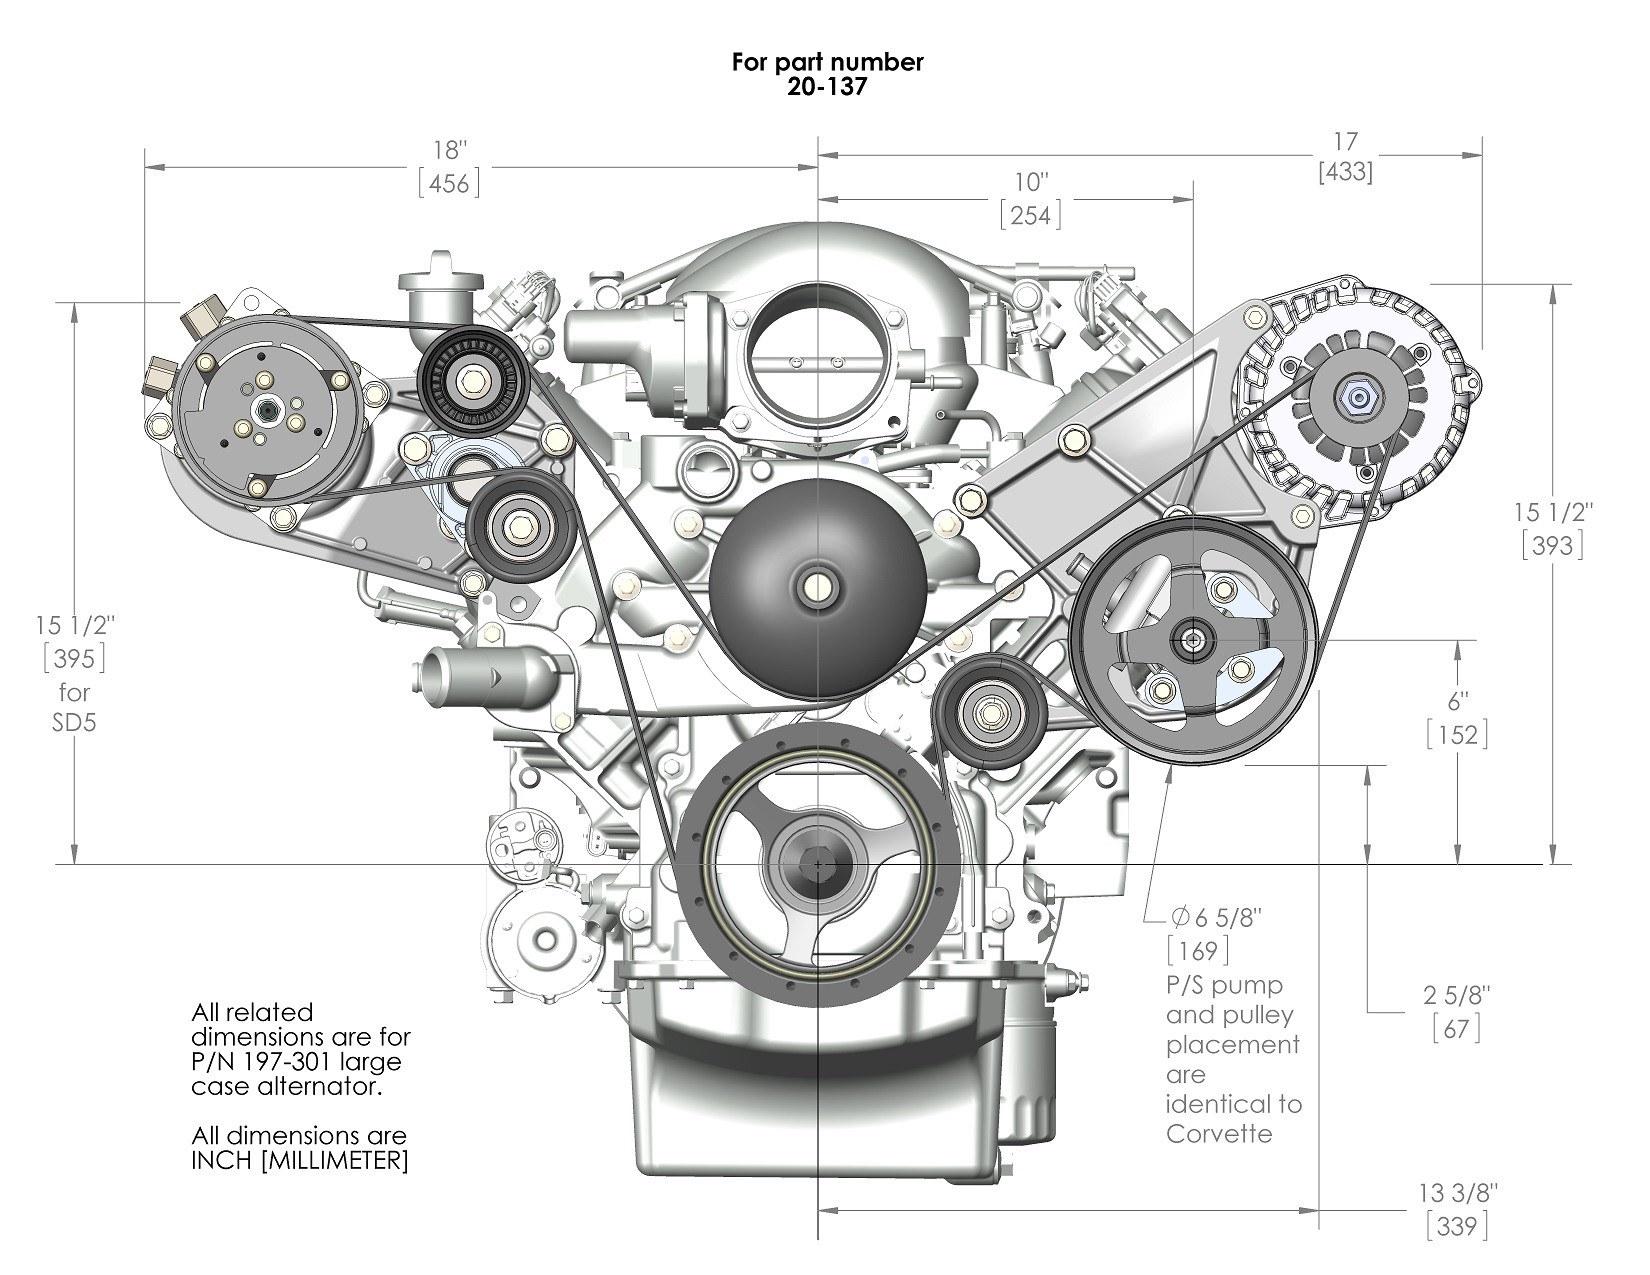 hight resolution of chevy 3 8 v6 engine diagram wiring library 3 1 liter v6 engine diagram v6 engine